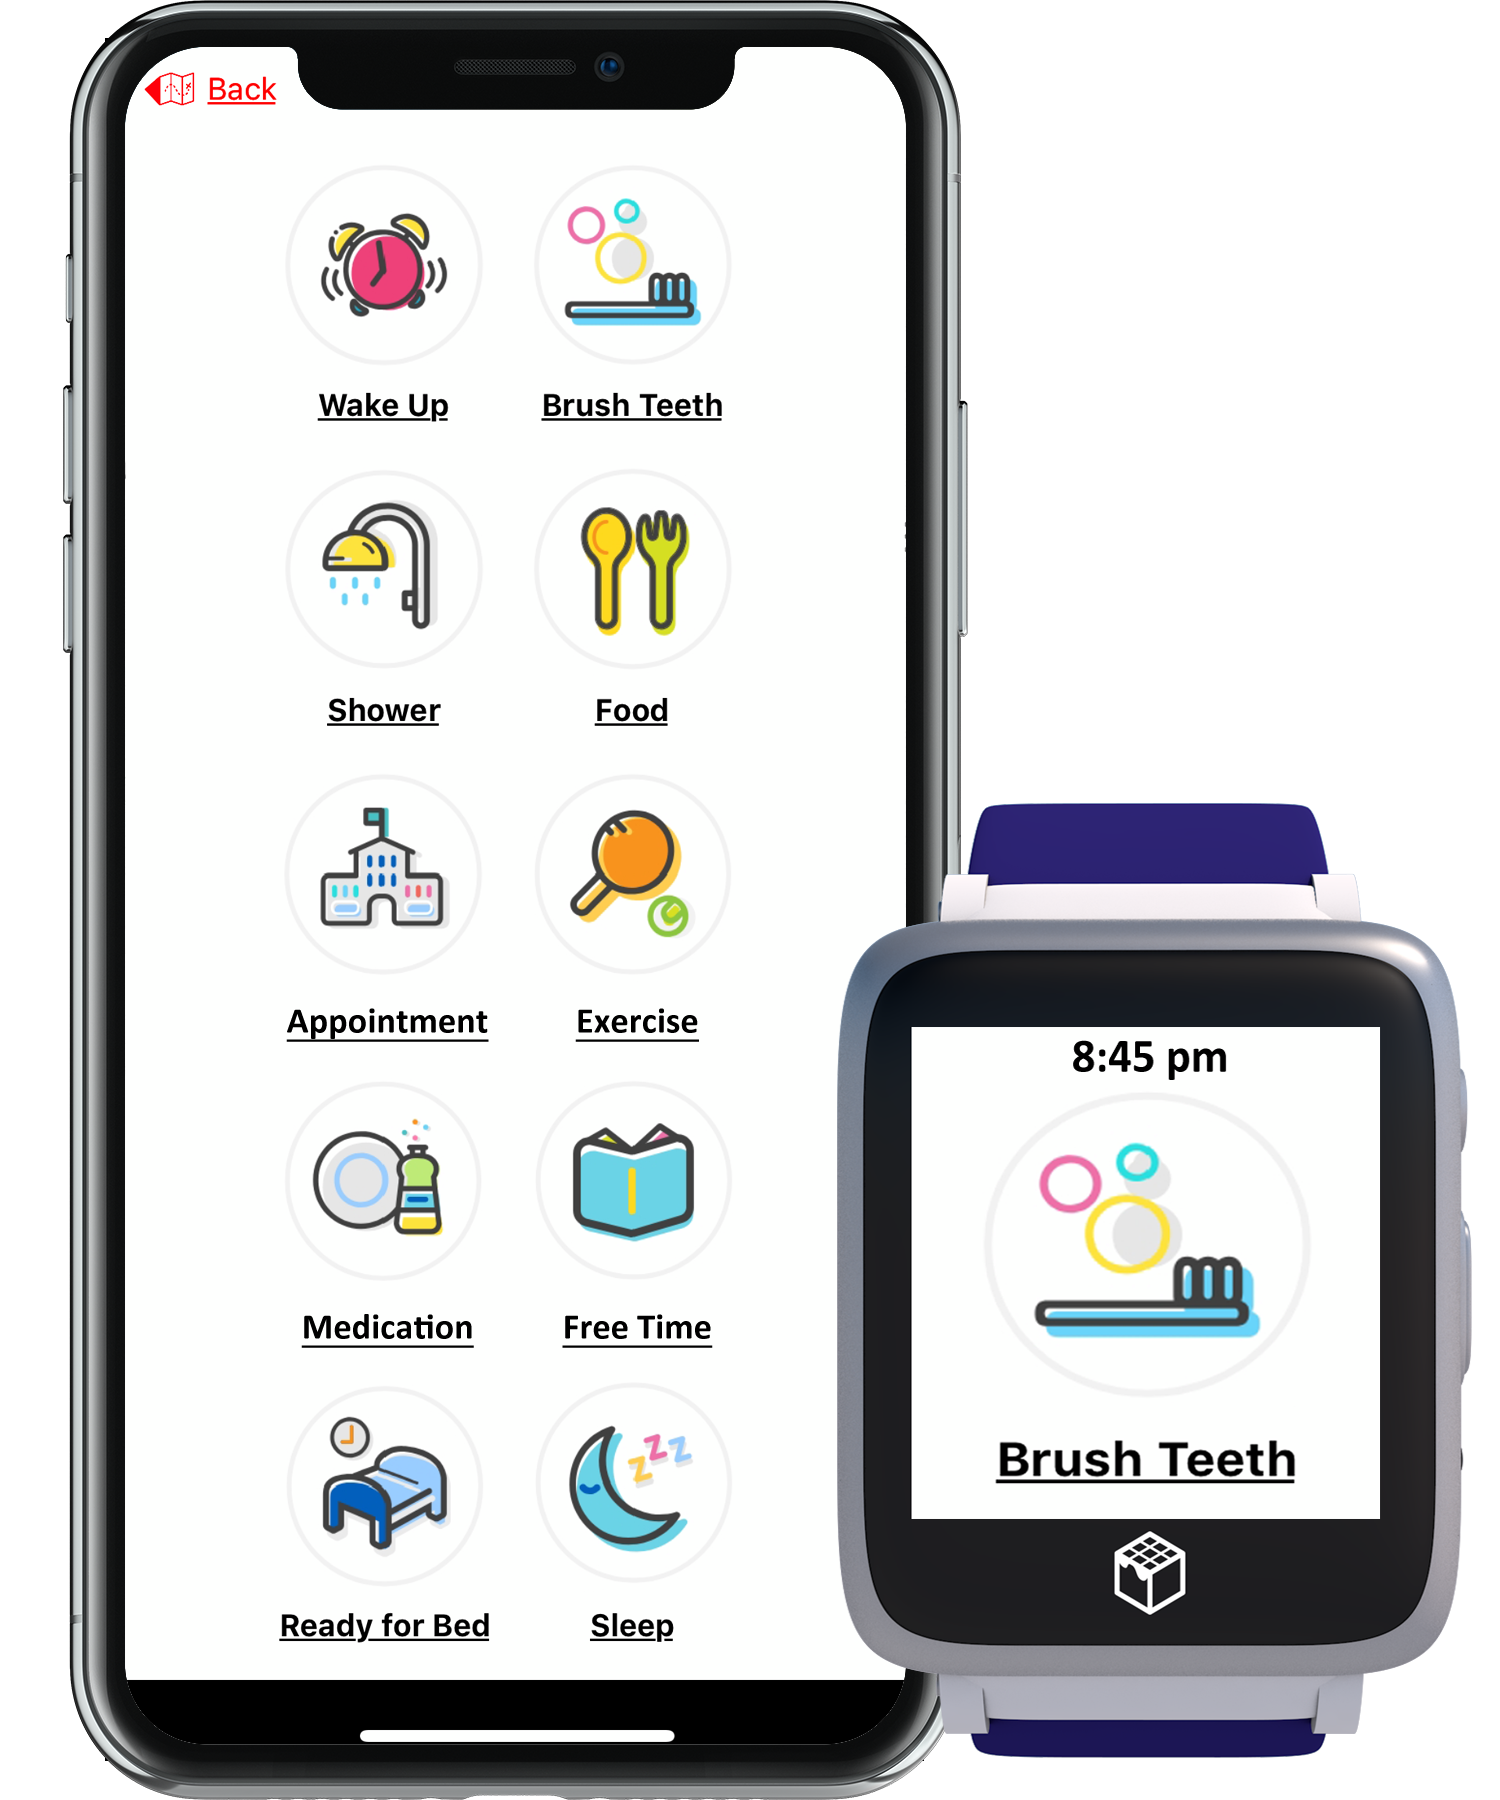 iGPS Wearable Safety watch for seniors mobile app scheduler